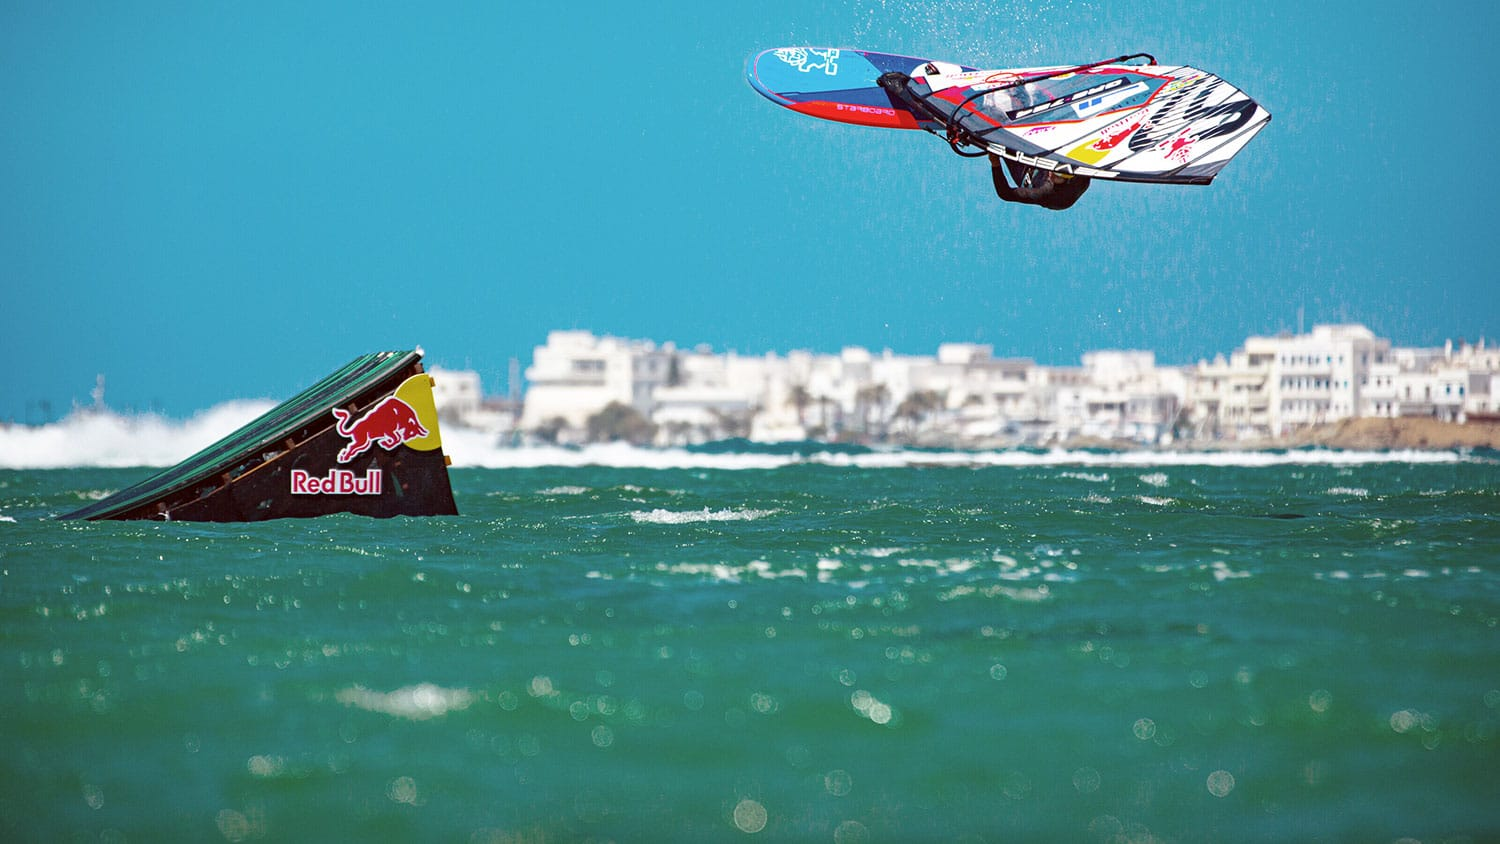 Lennart Neubauer ©Ronny Skevis/Red Bull Content Pool